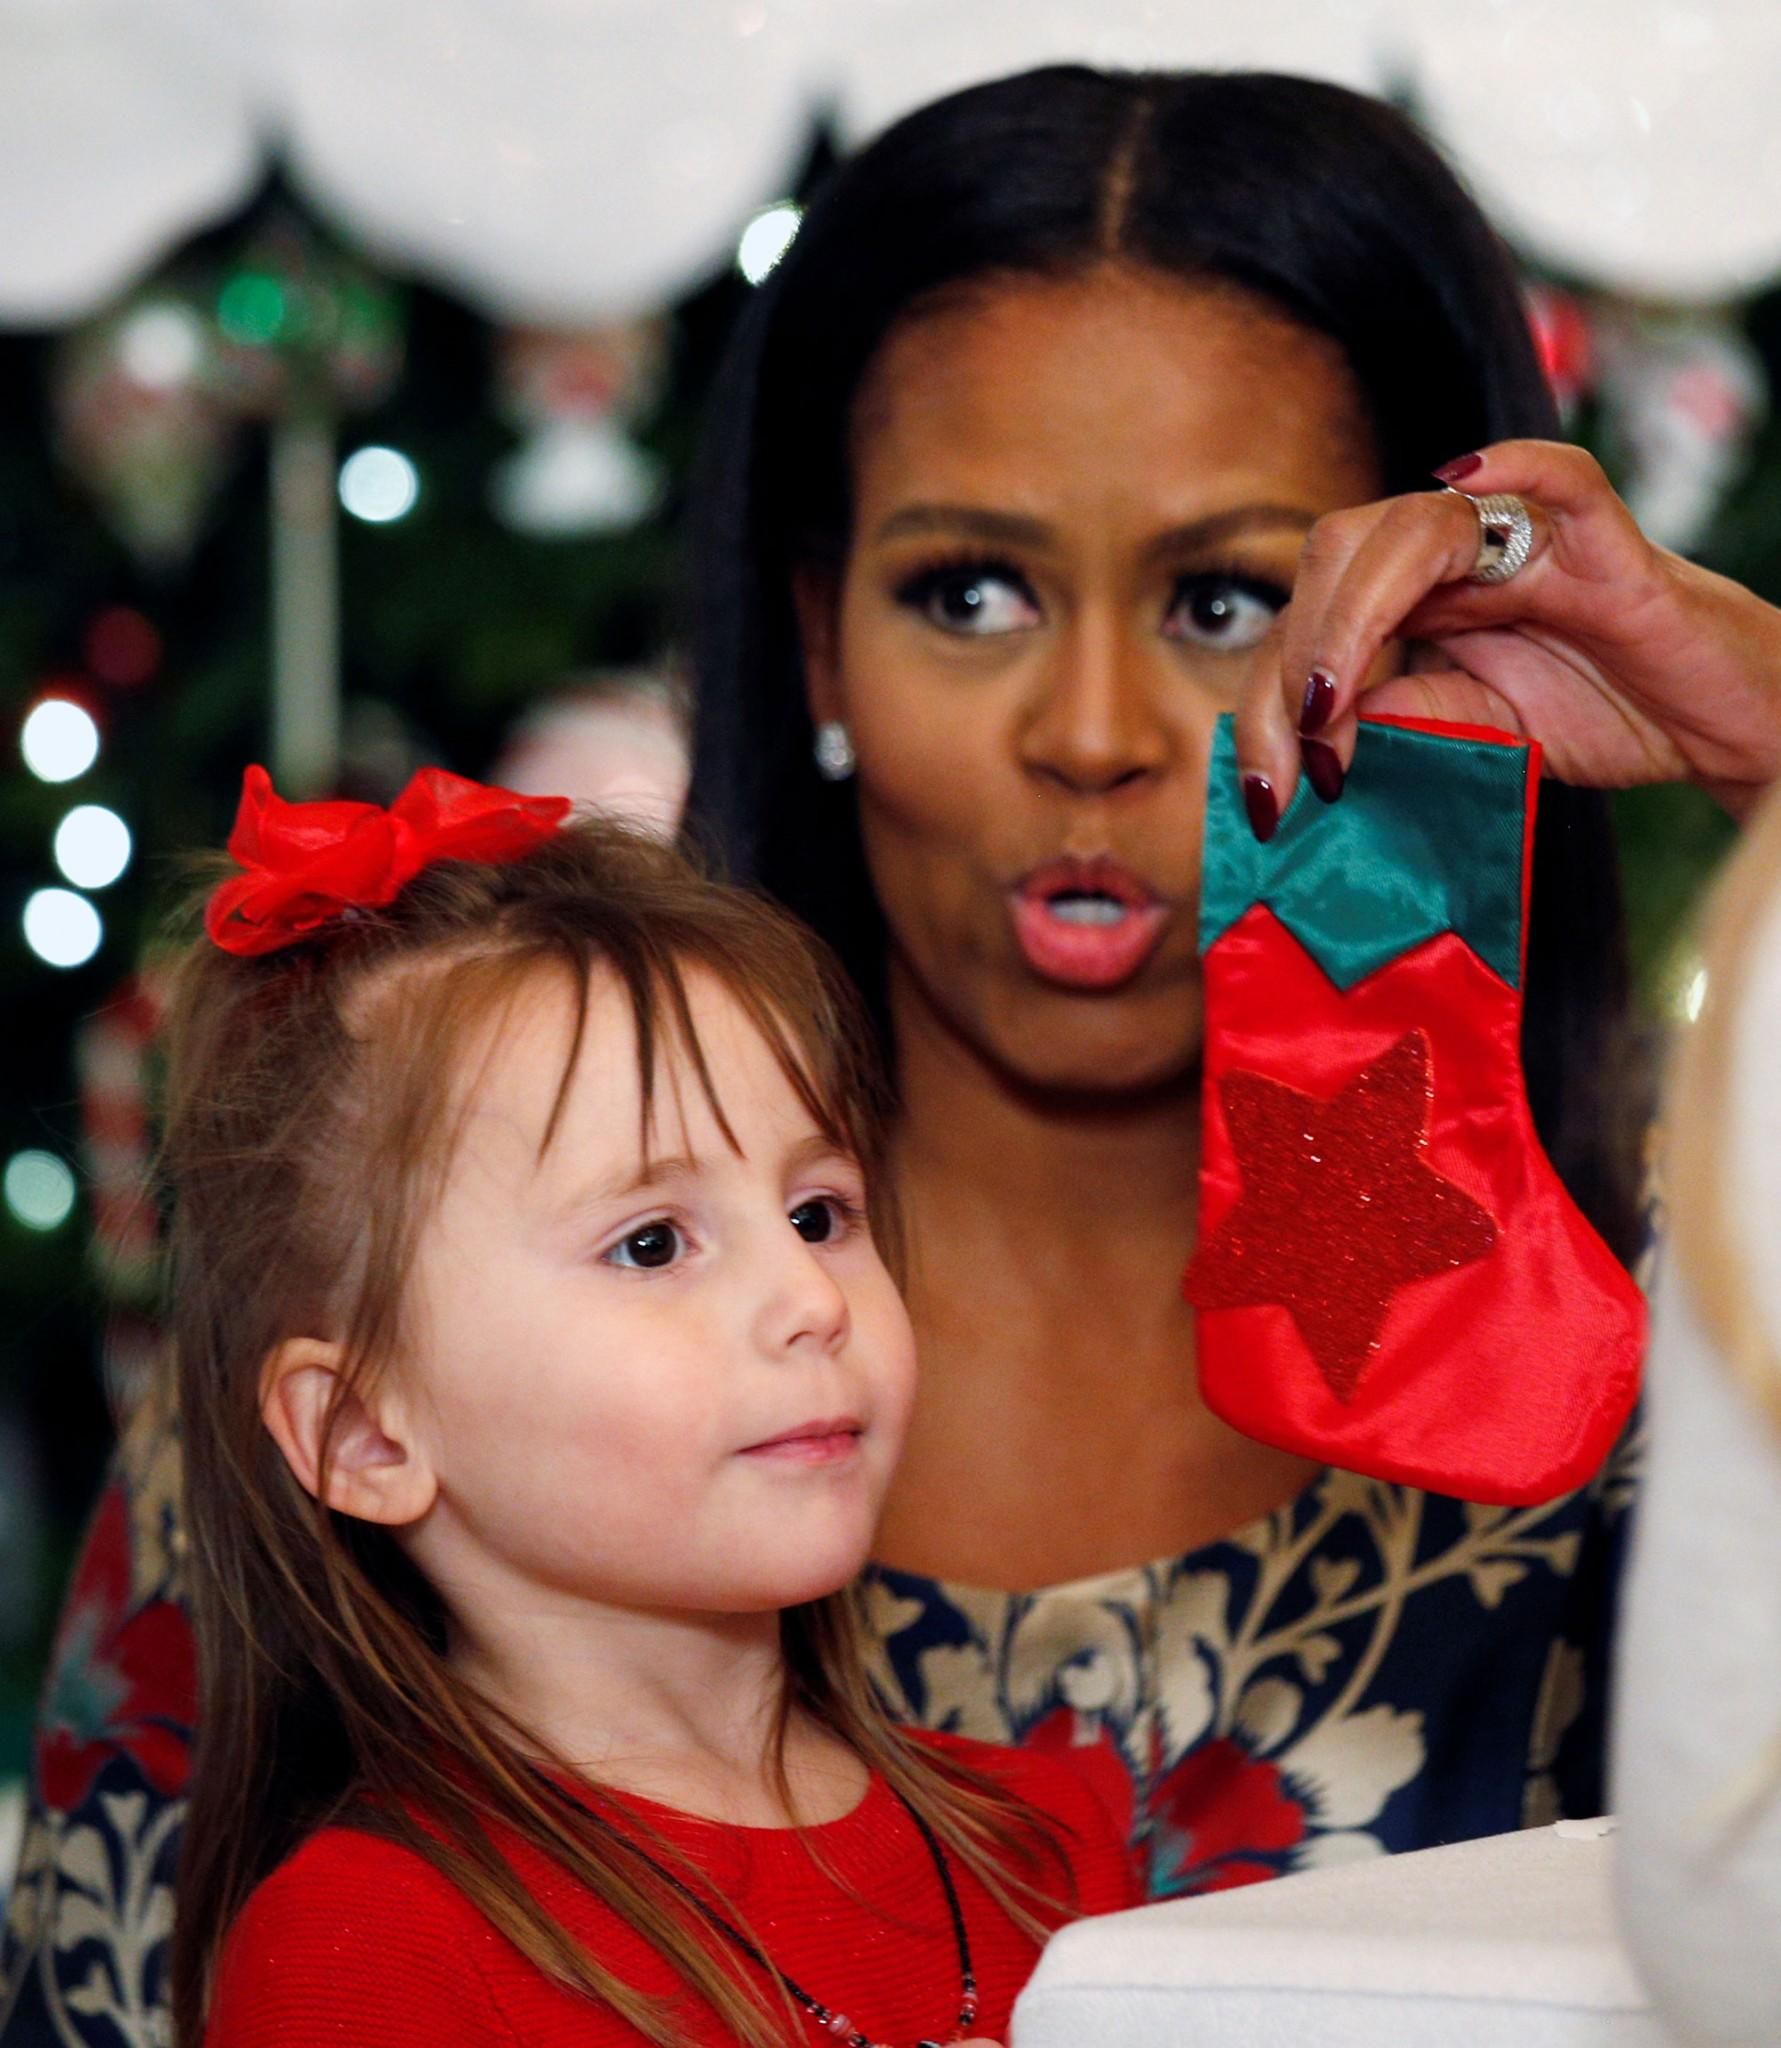 <p>First lady Michelle Obama holds up a holiday craft for a child during an event welcoming military families to the White House to view the holiday decorations in Washington on Nov. 29, 2016. (Photo: Kevin Lamarque/Reuters) </p>